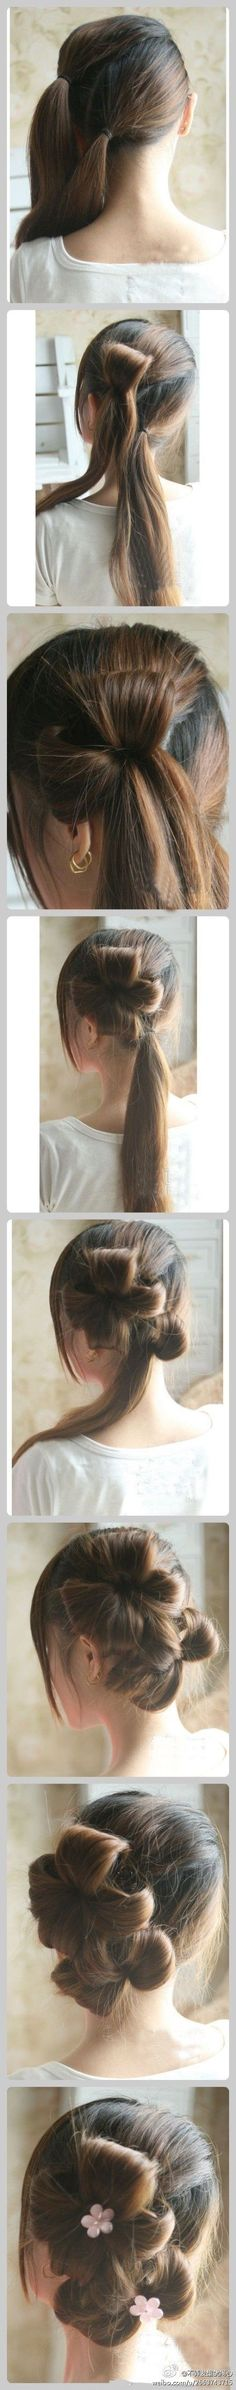 Scarcely can you see any girl who doesn't want to look herself exception from others. This is why she grabs so many ways to look herself different. However, the best way of changing your look is simply grabbing different hairstyles for girls. #hairstraightenerbeauty #hairstraighteningtipsn #DifferentHairstylesforgirlsn